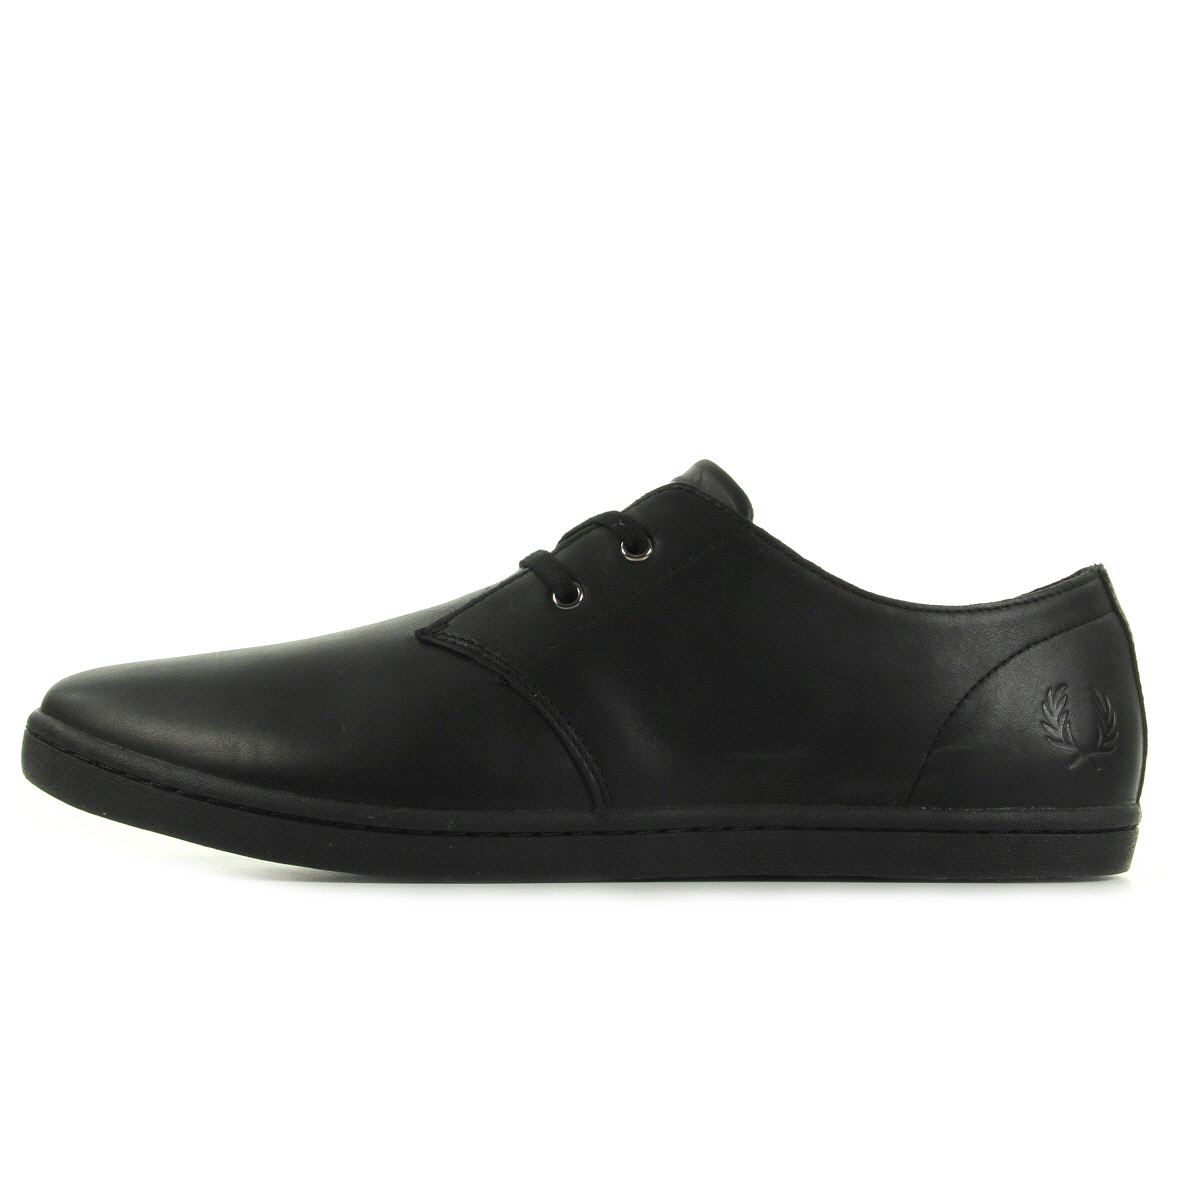 fred perry byron low leather b9076102 chaussures homme homme. Black Bedroom Furniture Sets. Home Design Ideas